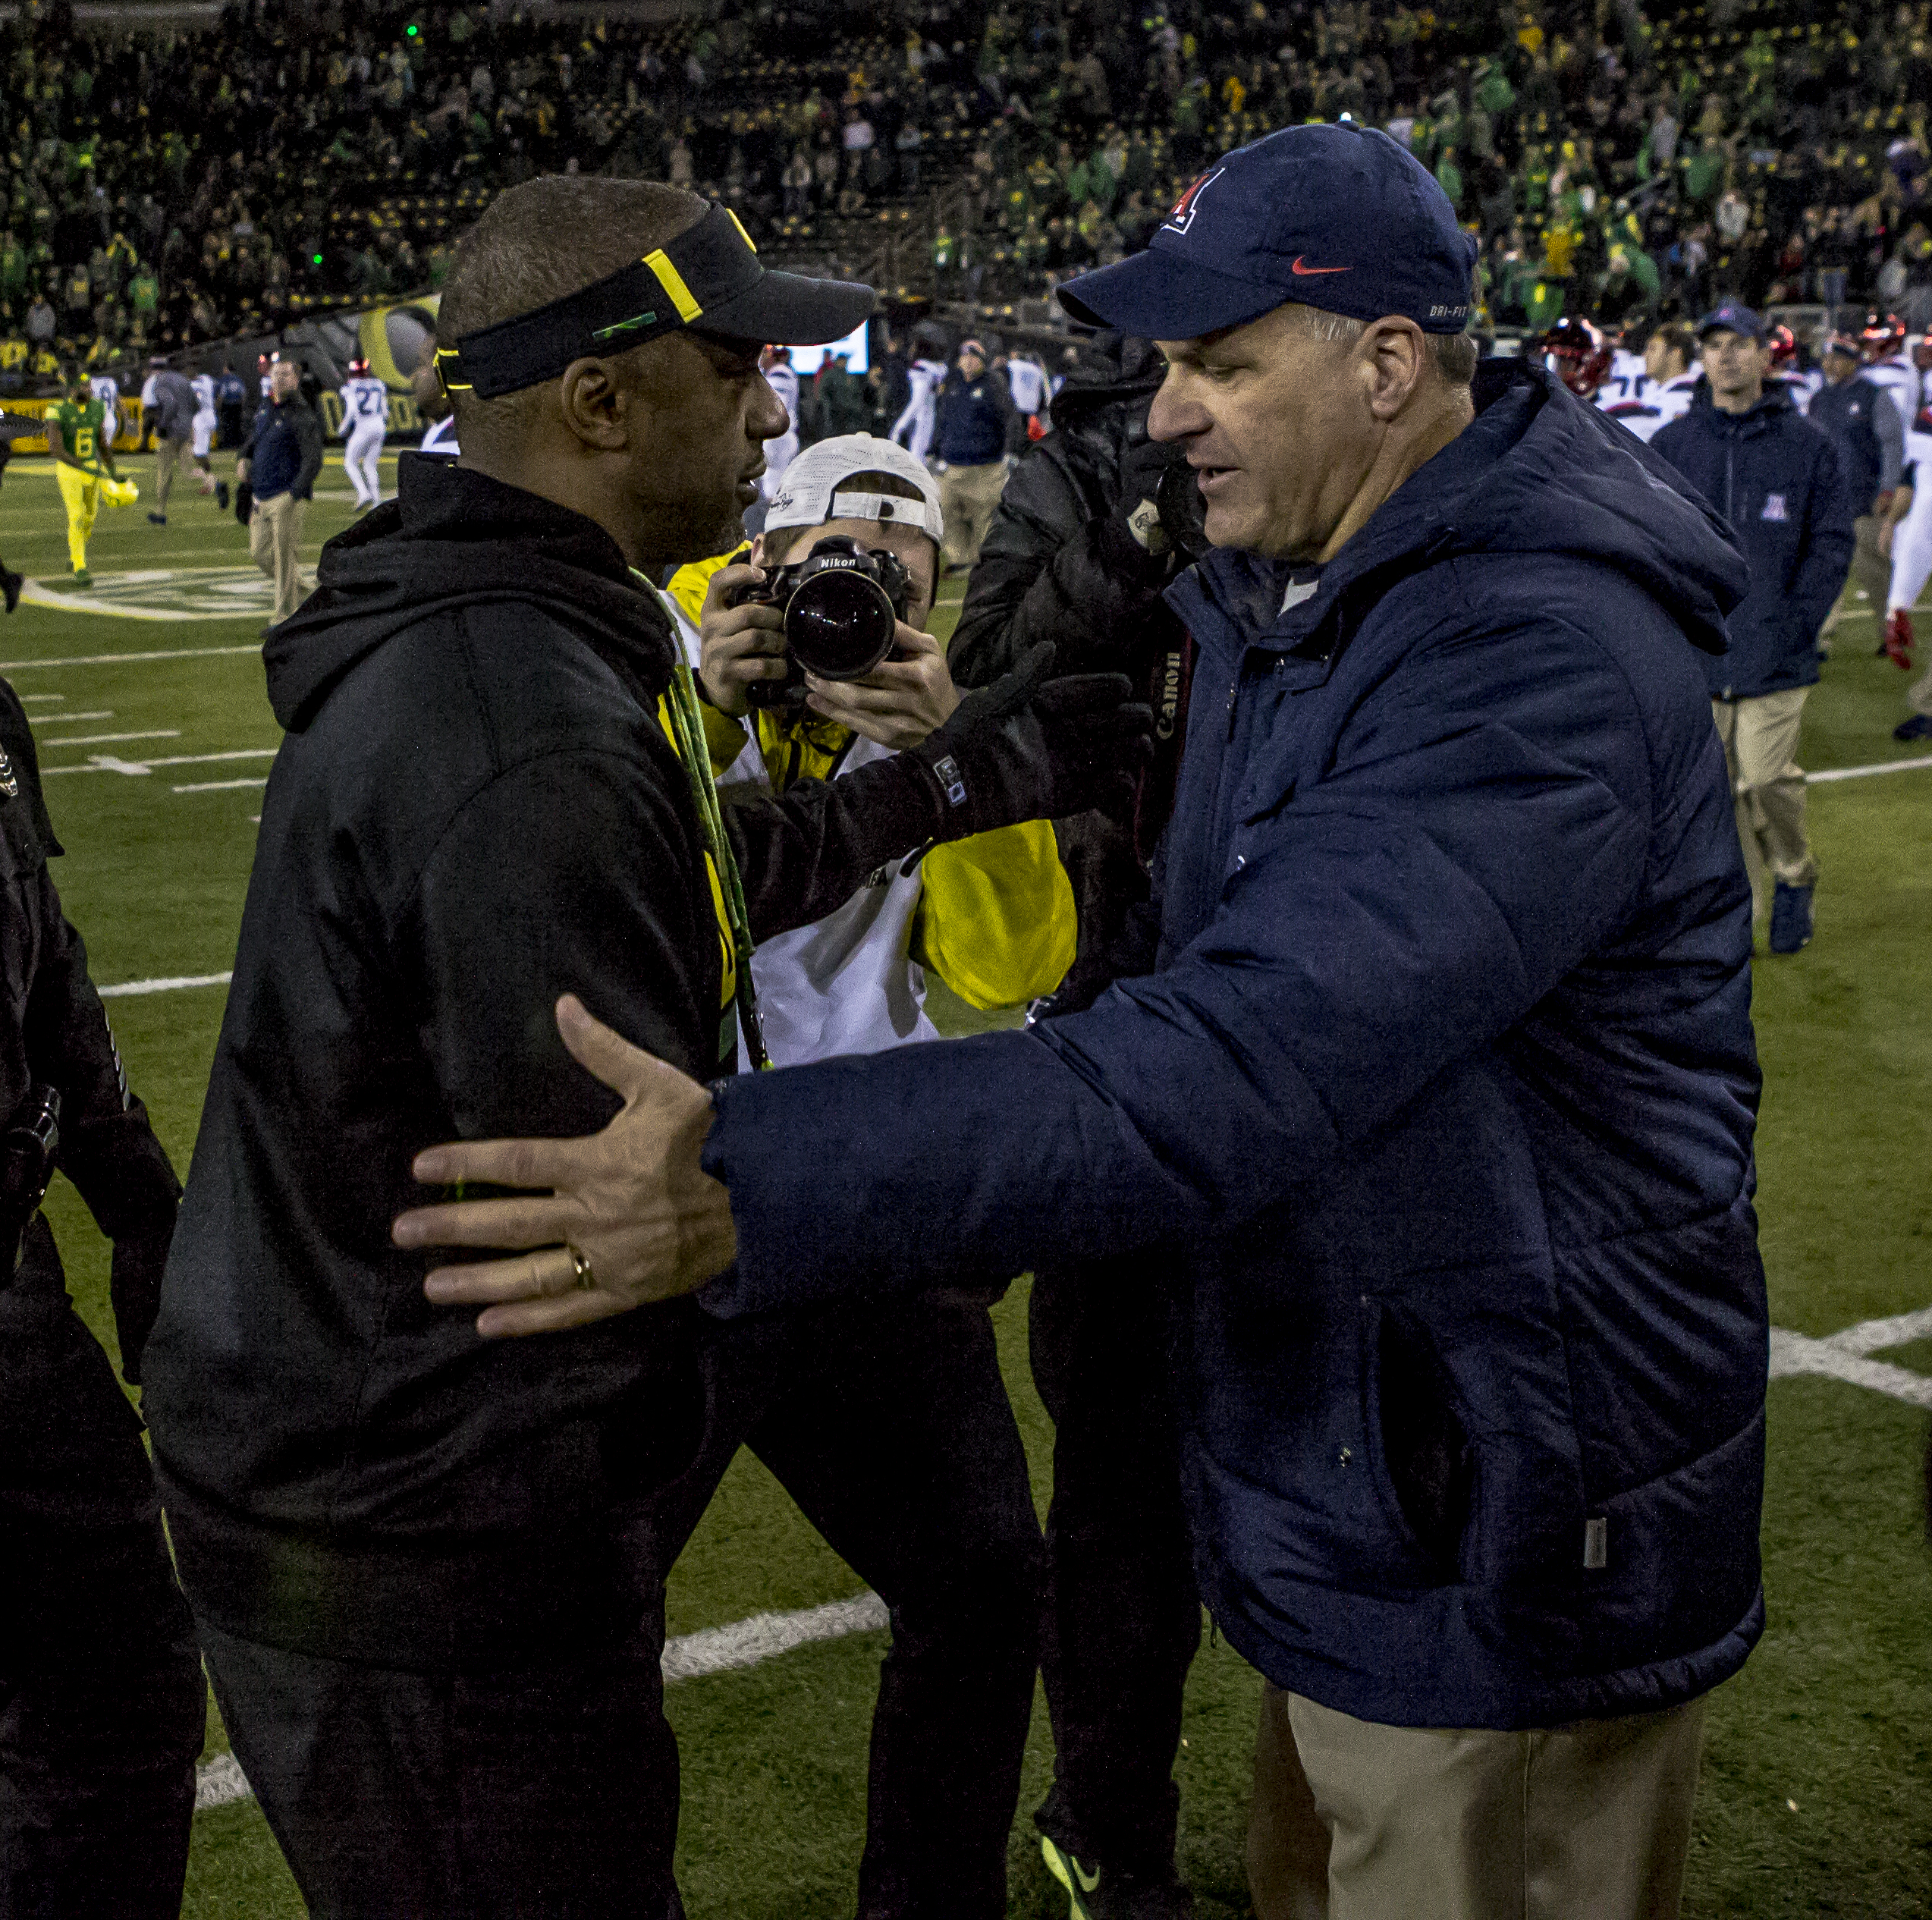 Oregon Head Coach Willie Taggart greets Arizona Head Coach Rich Rodriguez following the game. The Oregon Ducks defeated the Arizona Wildcats 48 to 28 during a chilly evening game at Autzen Stadium on November 18, 2017. Photo by Ben Lonergan, Oregon News Lab